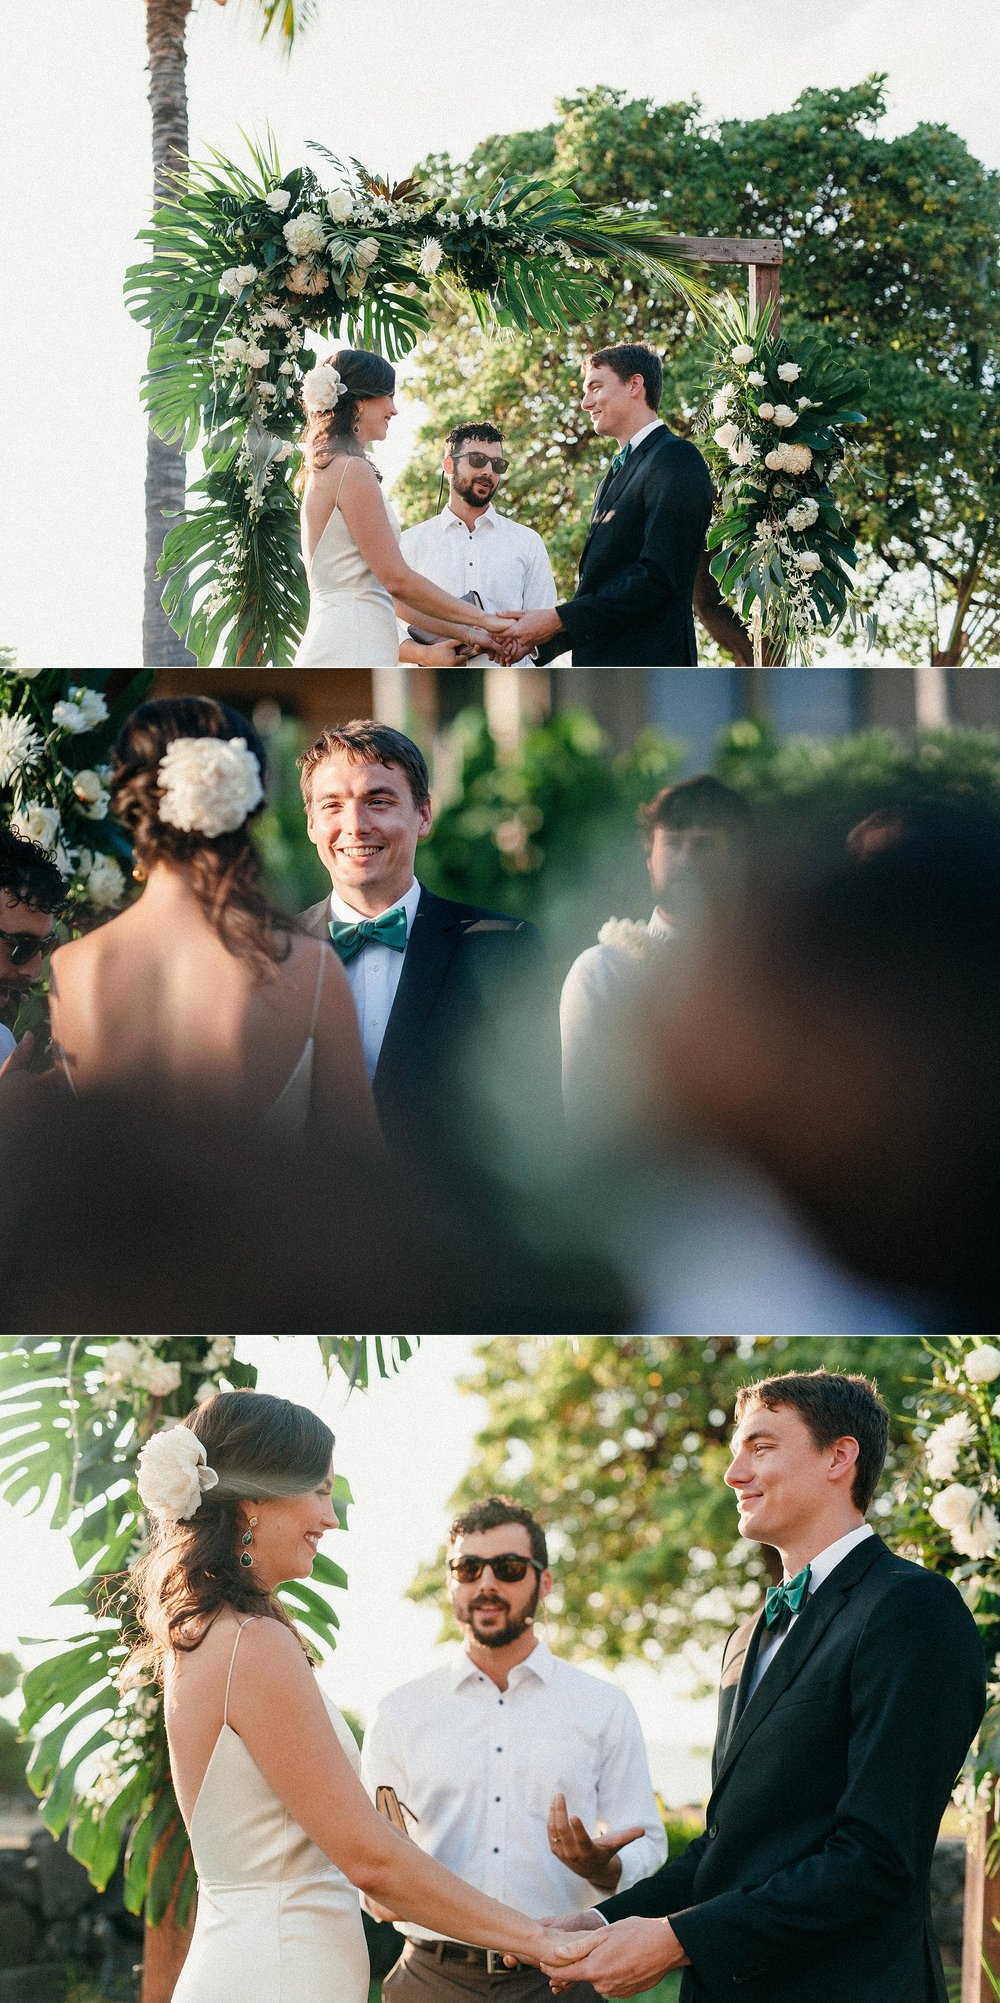 Kona-Big-Island-Hawaii-New-Years-Eve-Wedding-with-Ceremony-at-Living-Stones-Church-and-Reception-at-Daylight-Mind-Coffee_0013.jpg